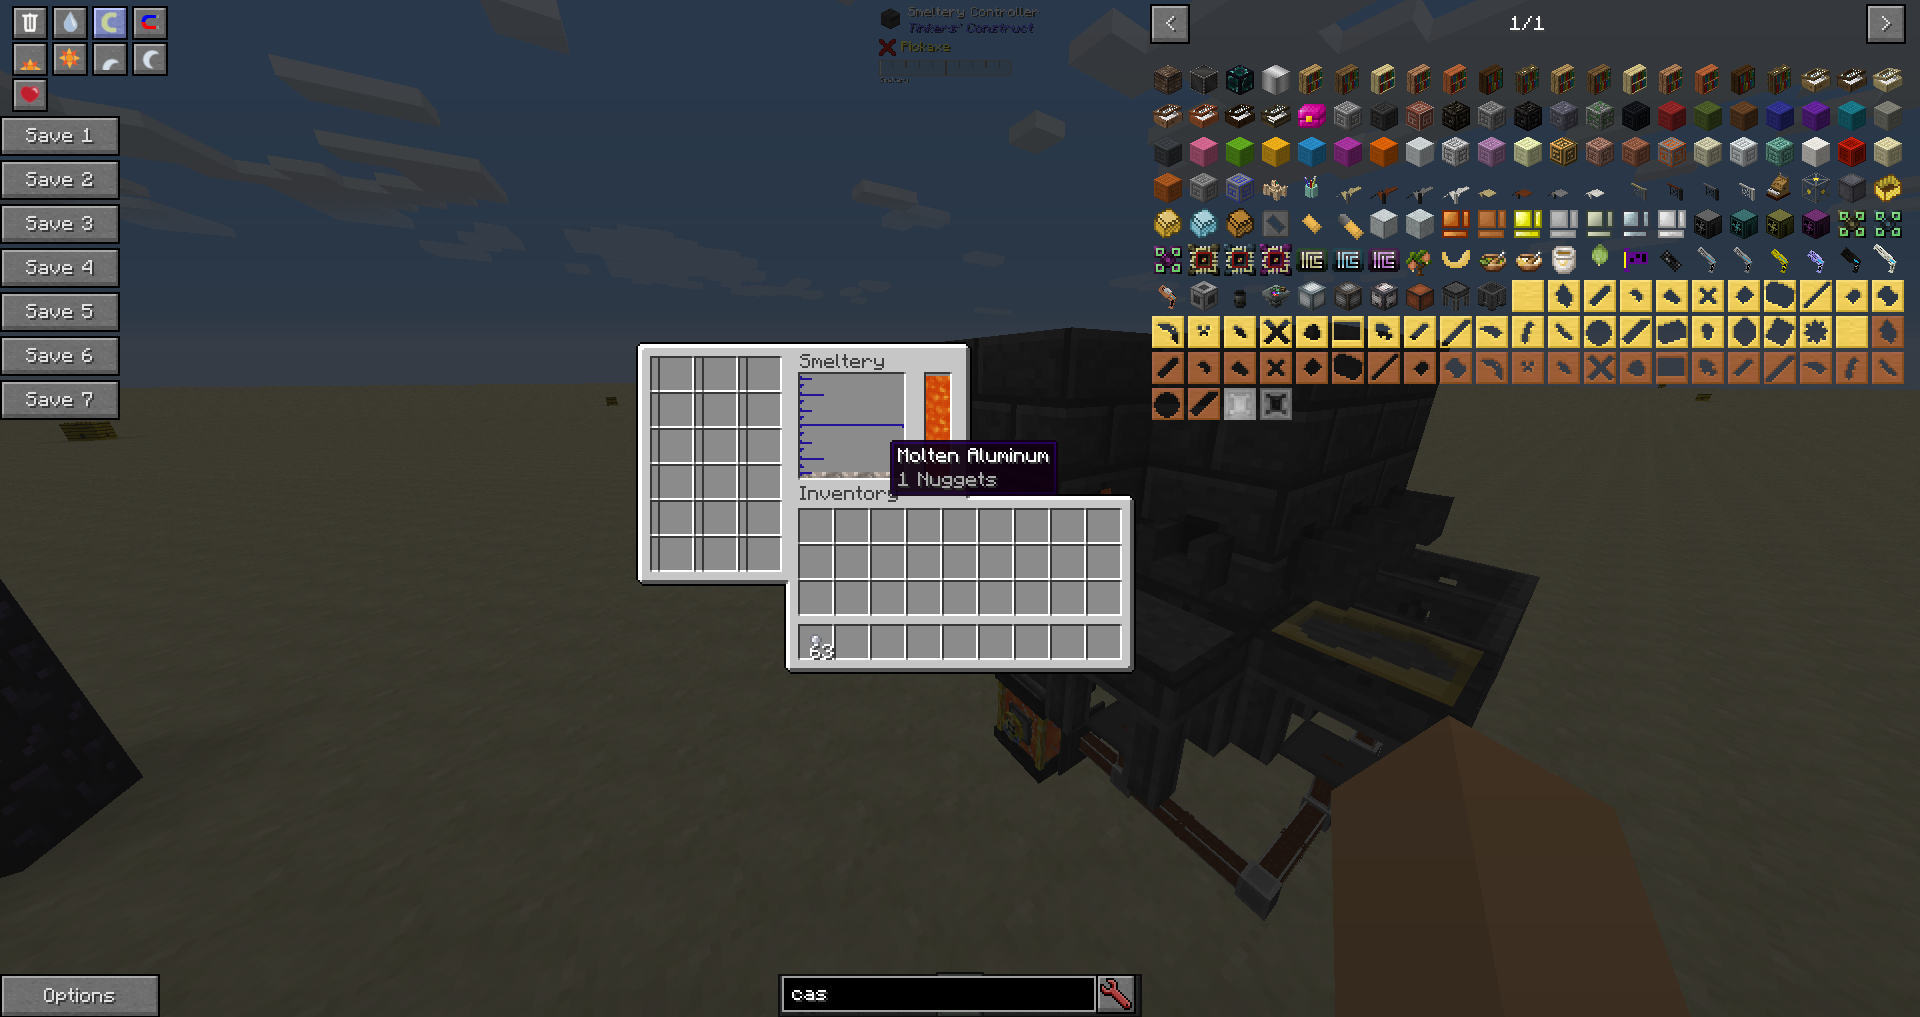 Duplication glitch (Smeltery output) · Issue #2933 · SlimeKnights